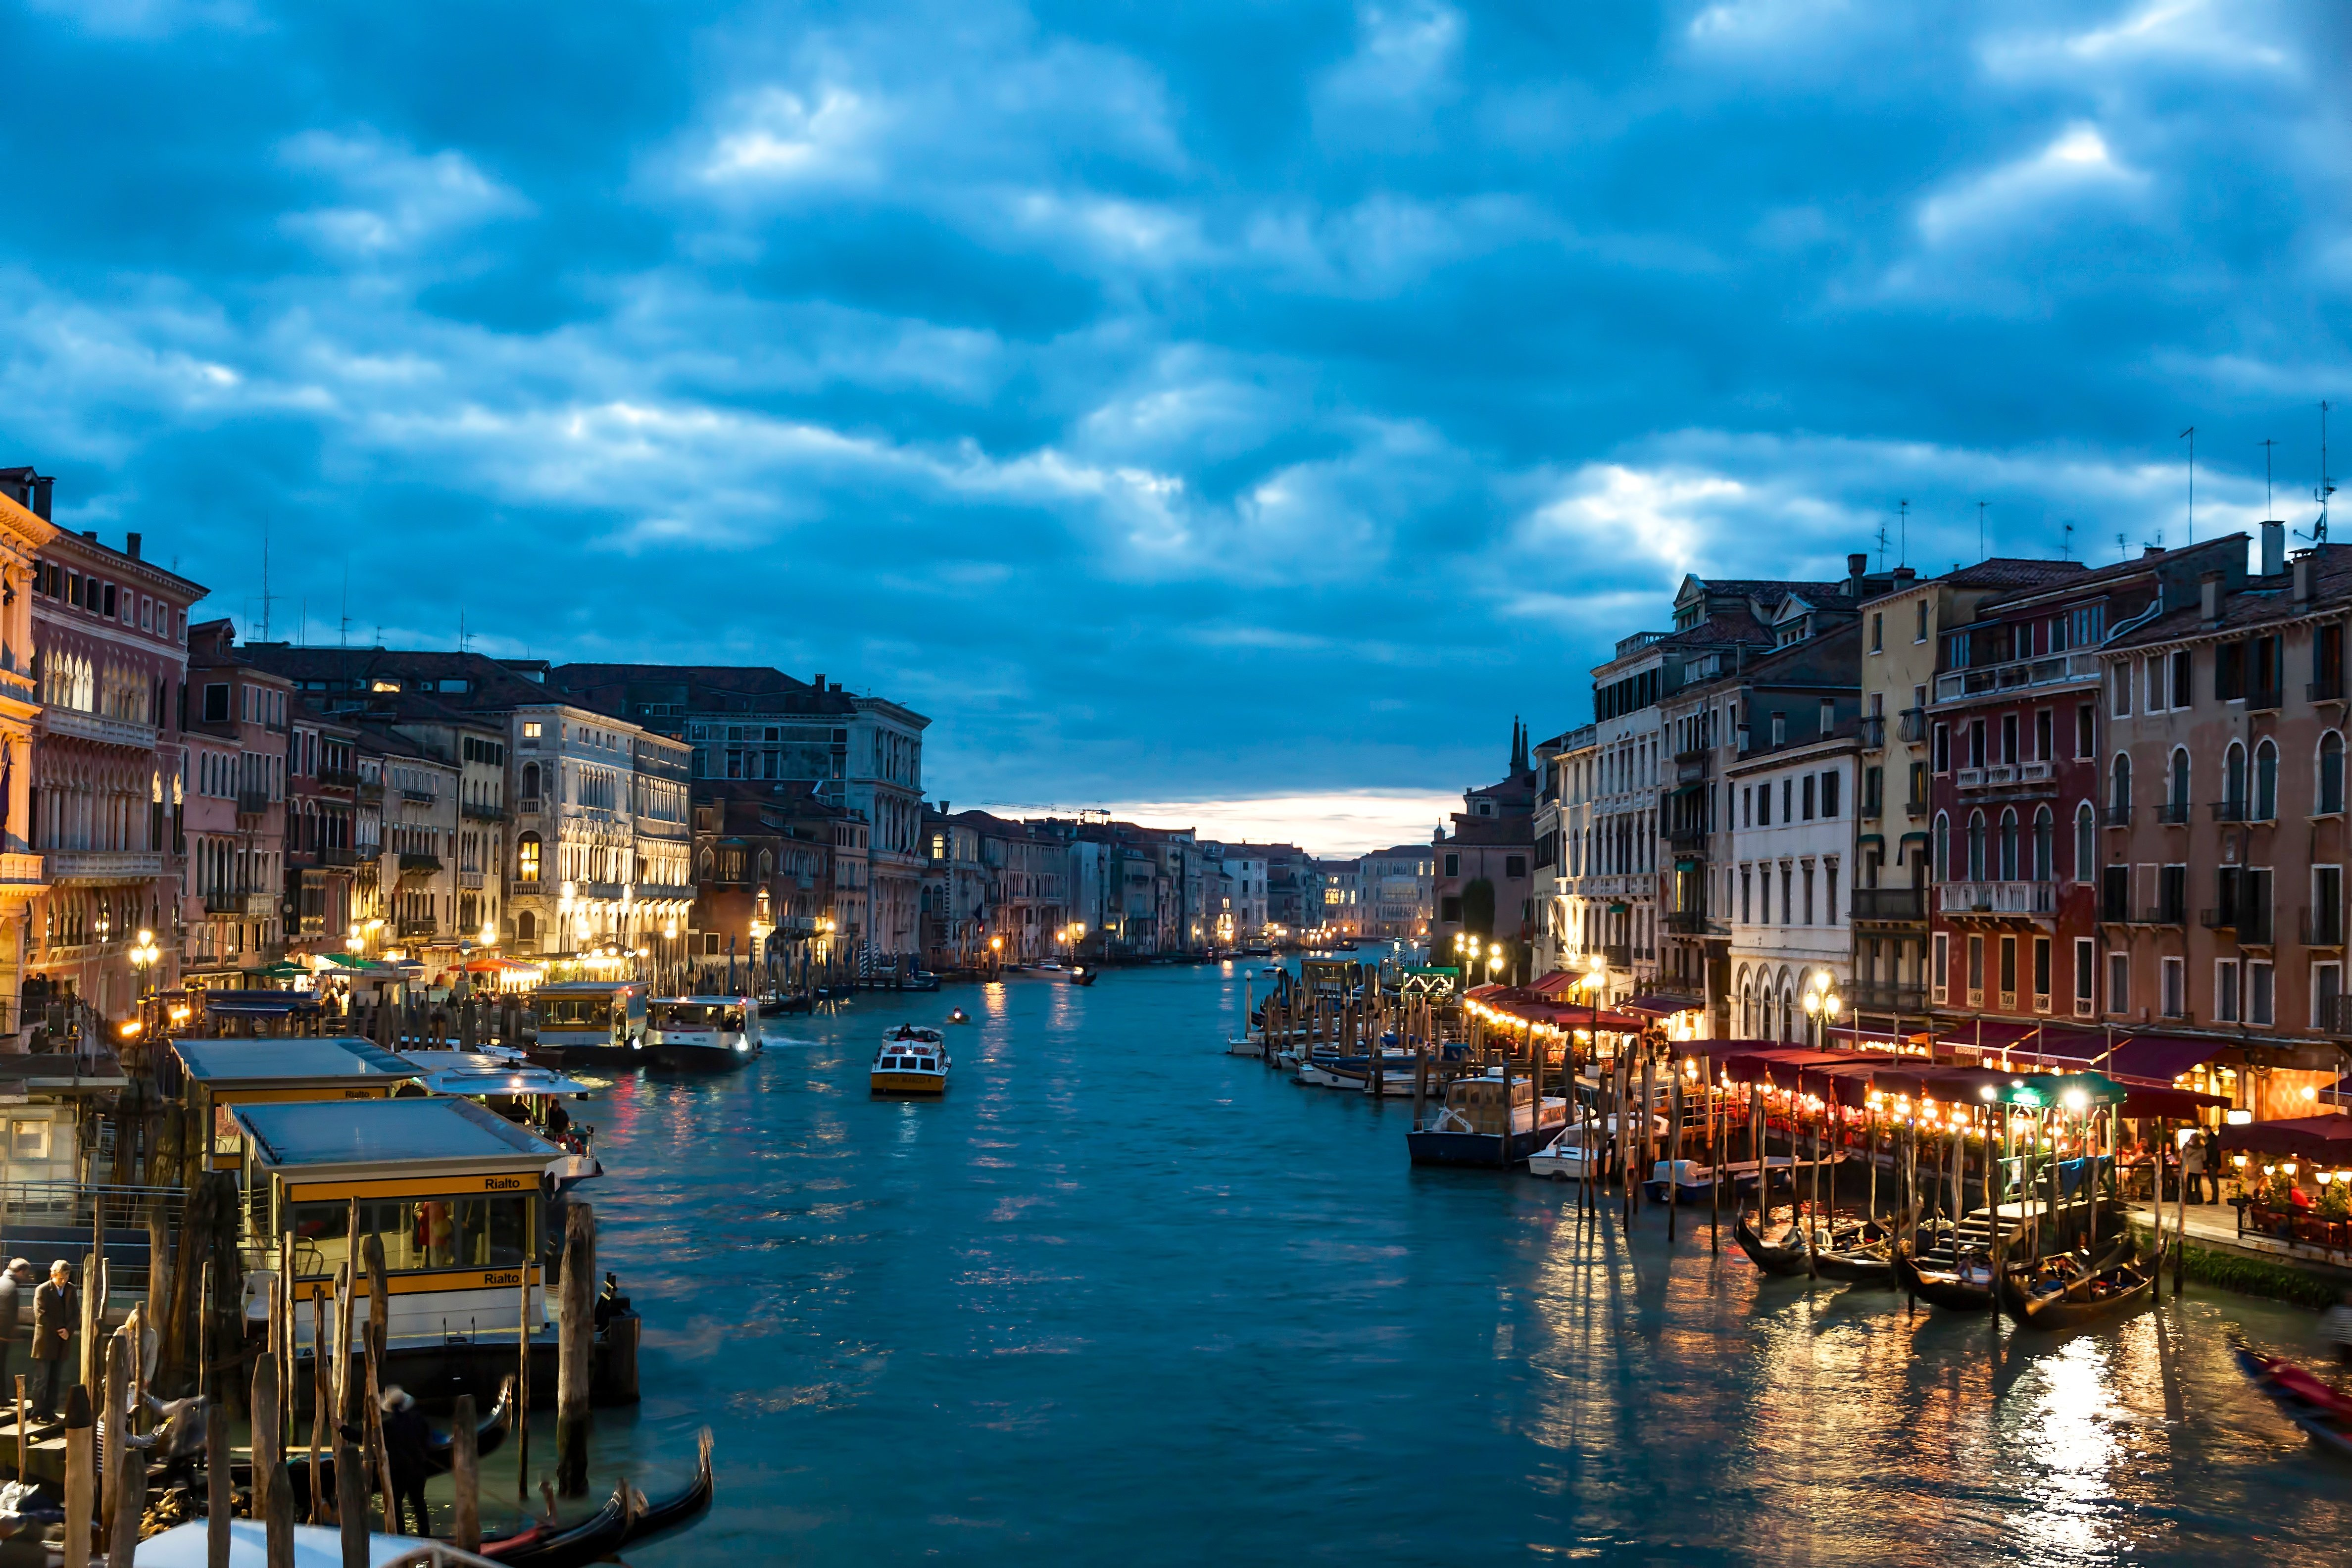 Venice Italy the city wallpaper | 4752x3168 | 354878 ...